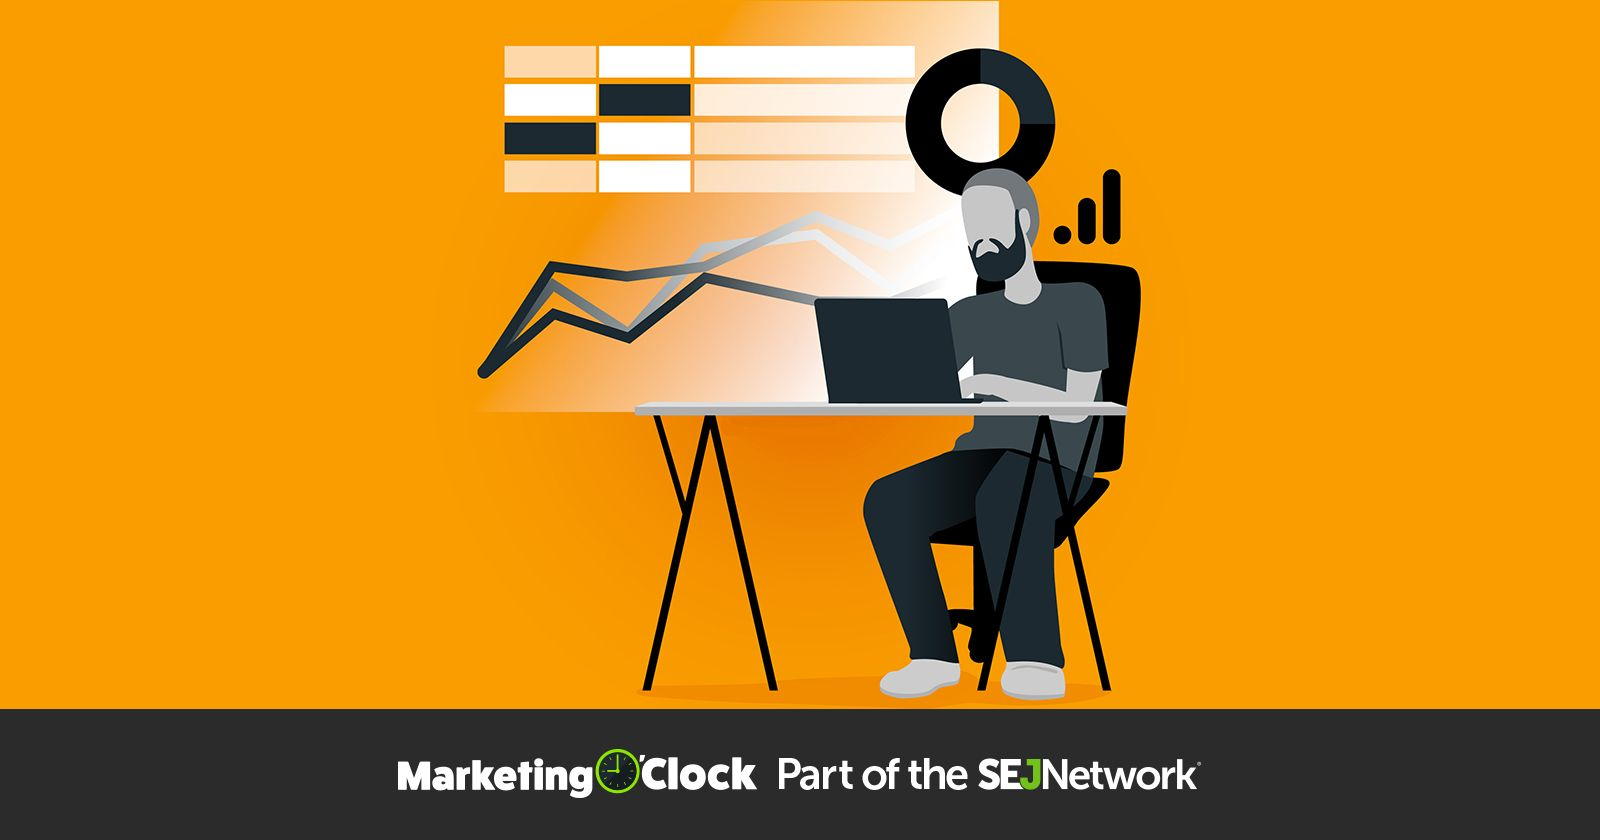 Google Analytics 4 Launches & This Week's Digital Marketing News [PODCAST]